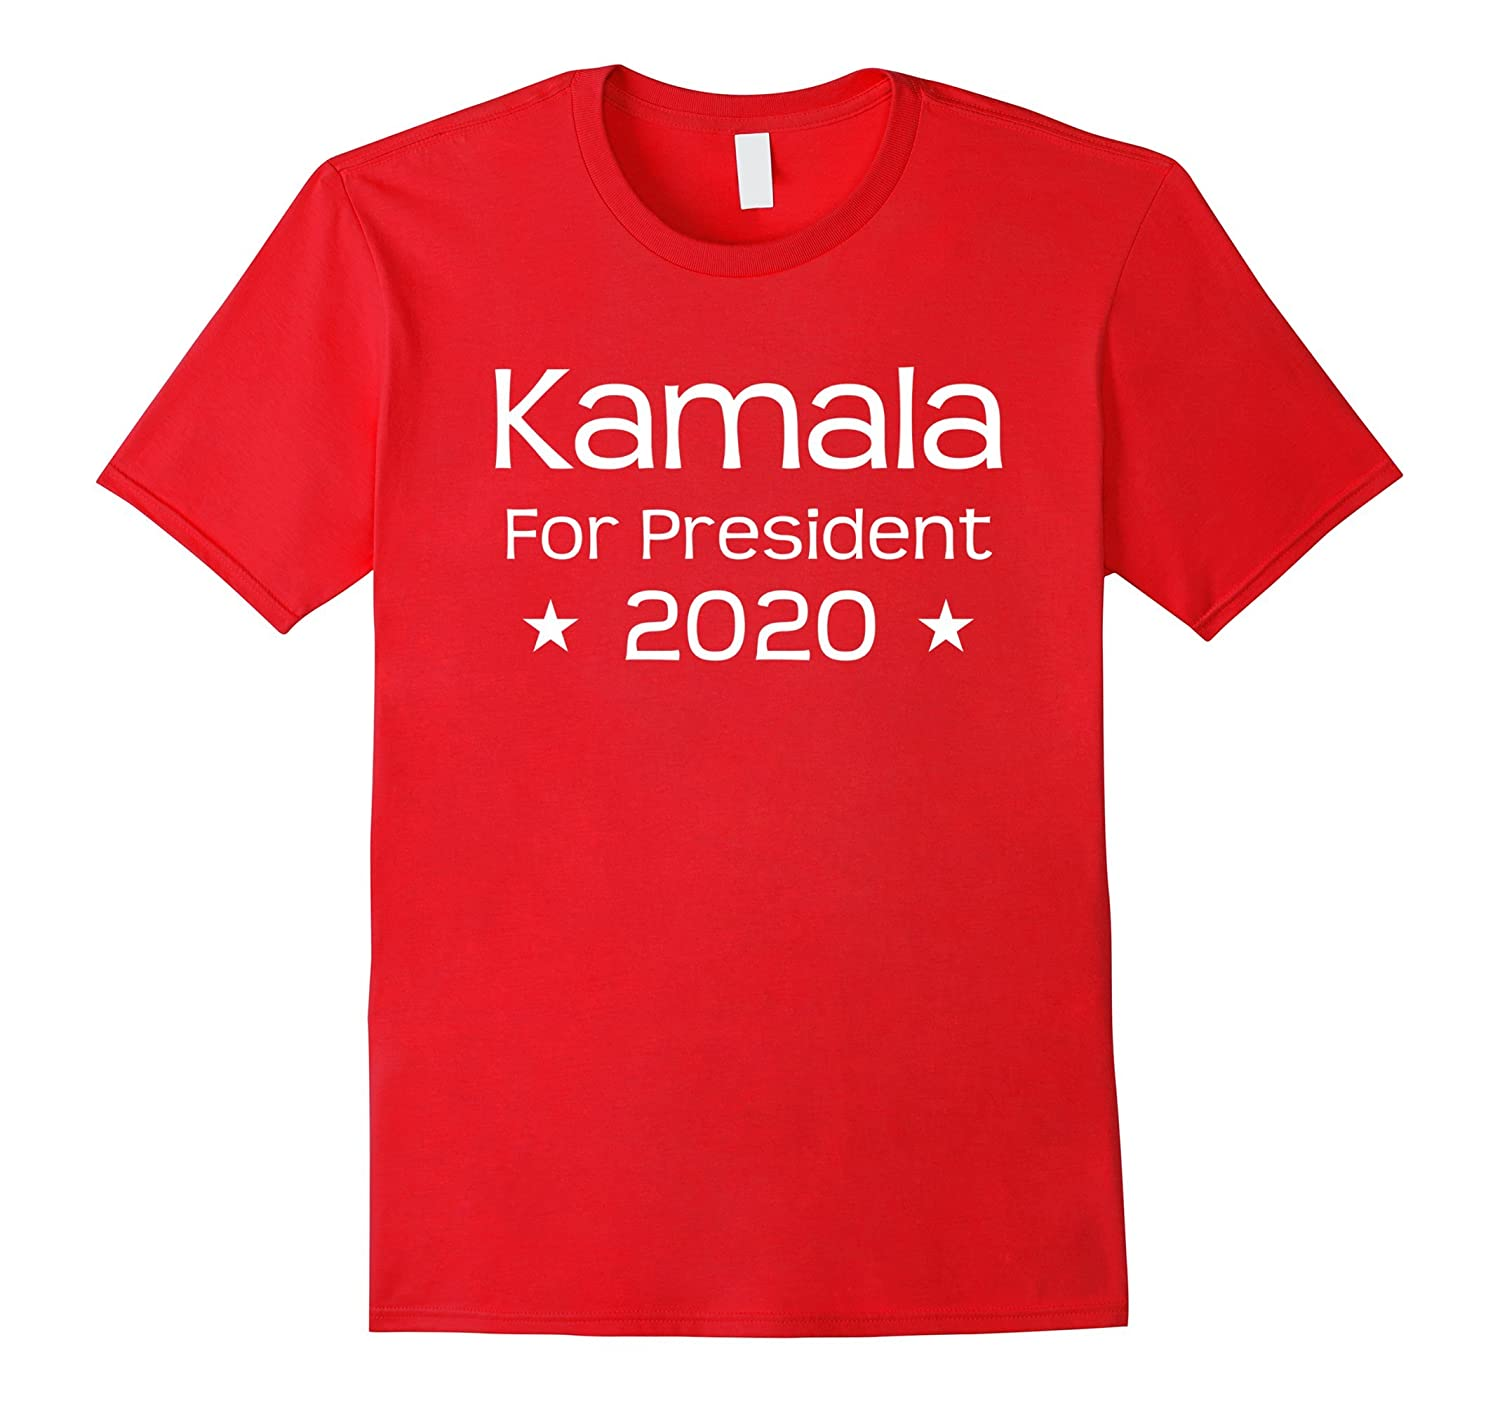 Kamala for President 2020 fierce woman t-shirt-PL